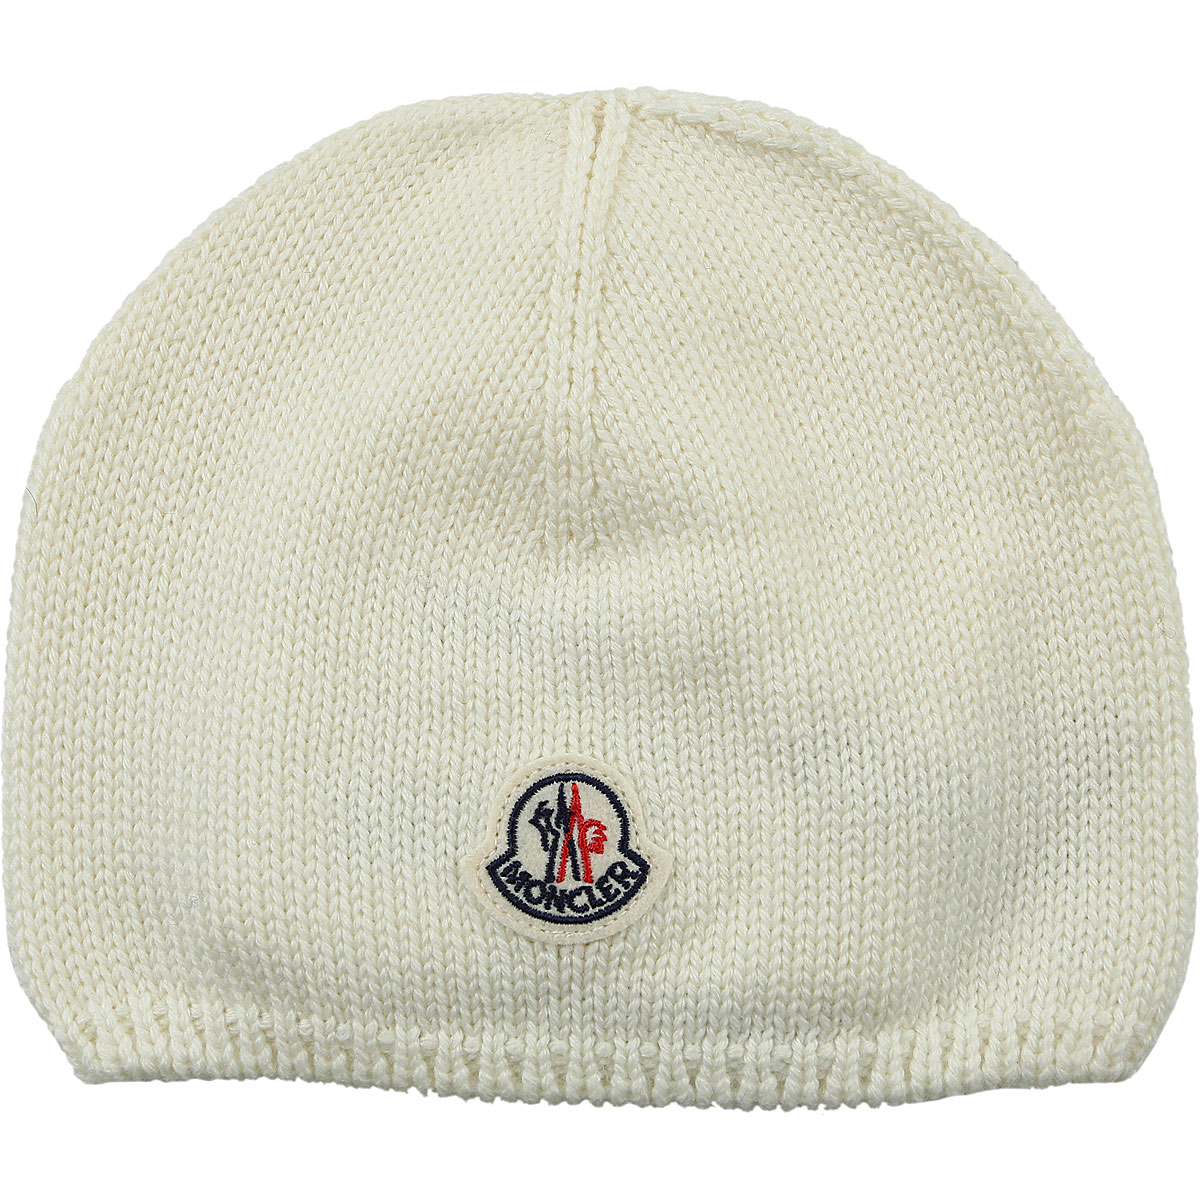 Moncler Kids Hats for Girls On Sale in Outlet Cream DK - GOOFASH - Womens HATS